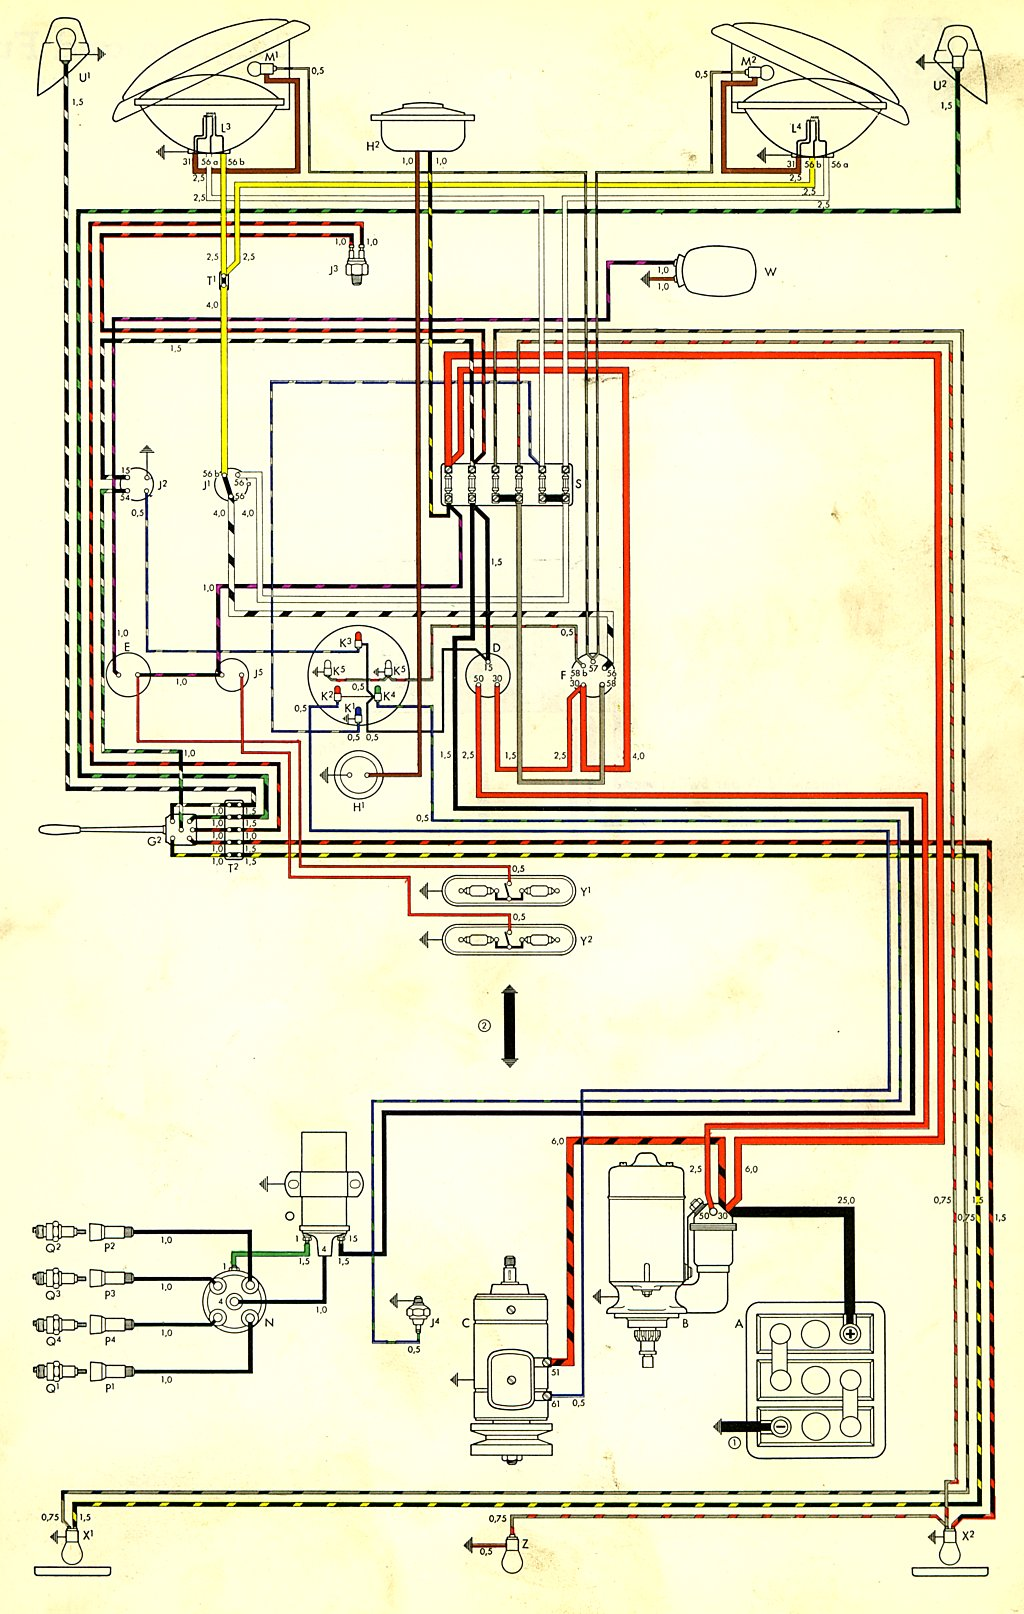 75 vw bus wiring diagrams 18 7 stromoeko de \u2022thesamba com type 2 wiring diagrams rh thesamba com 1968 vw bus wiring diagram 1968 vw bus wiring diagram